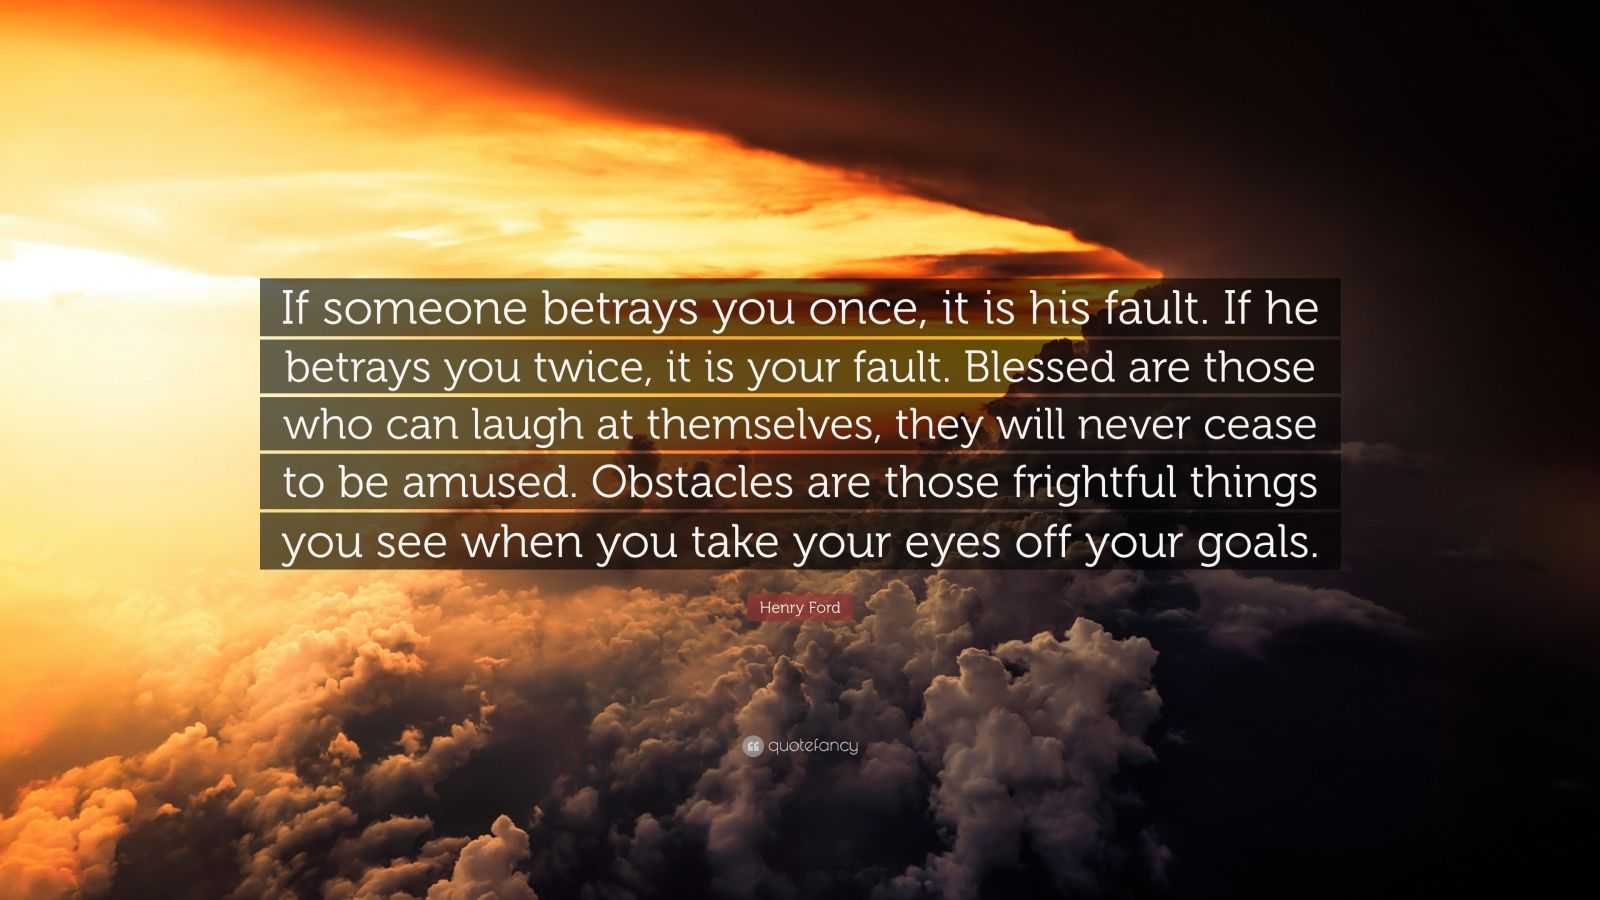 "Henry Ford Quote: ""If someone betrays you once, it is his fault. If he betrays you twice, it is your fault. Blessed are those who can laugh at themselves, they will never cease to be amused. Obstacles are those frightful things you see when you take your eyes off your goals."""